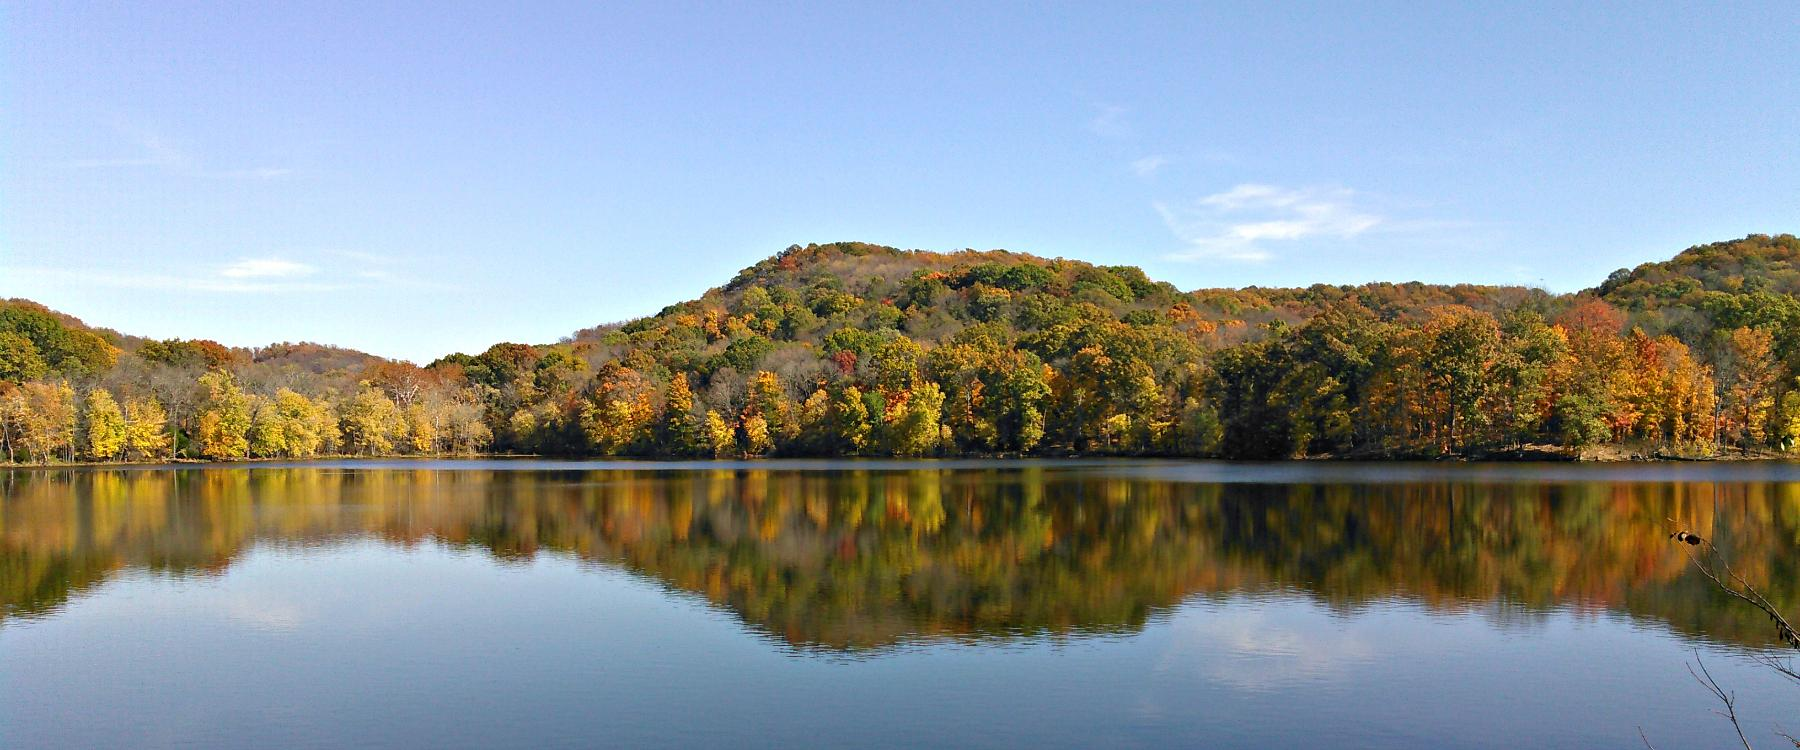 Radnor-lake-11-8-14-sward